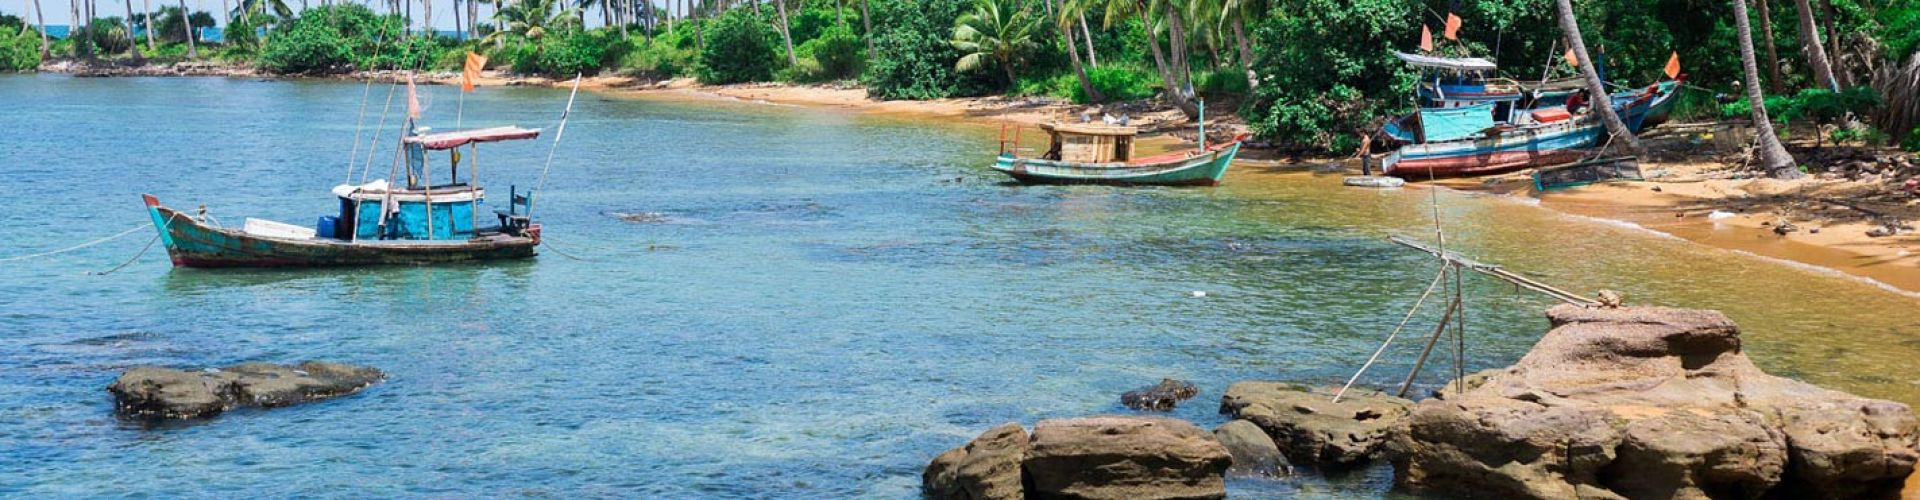 Destinations in Phu Quoc Island